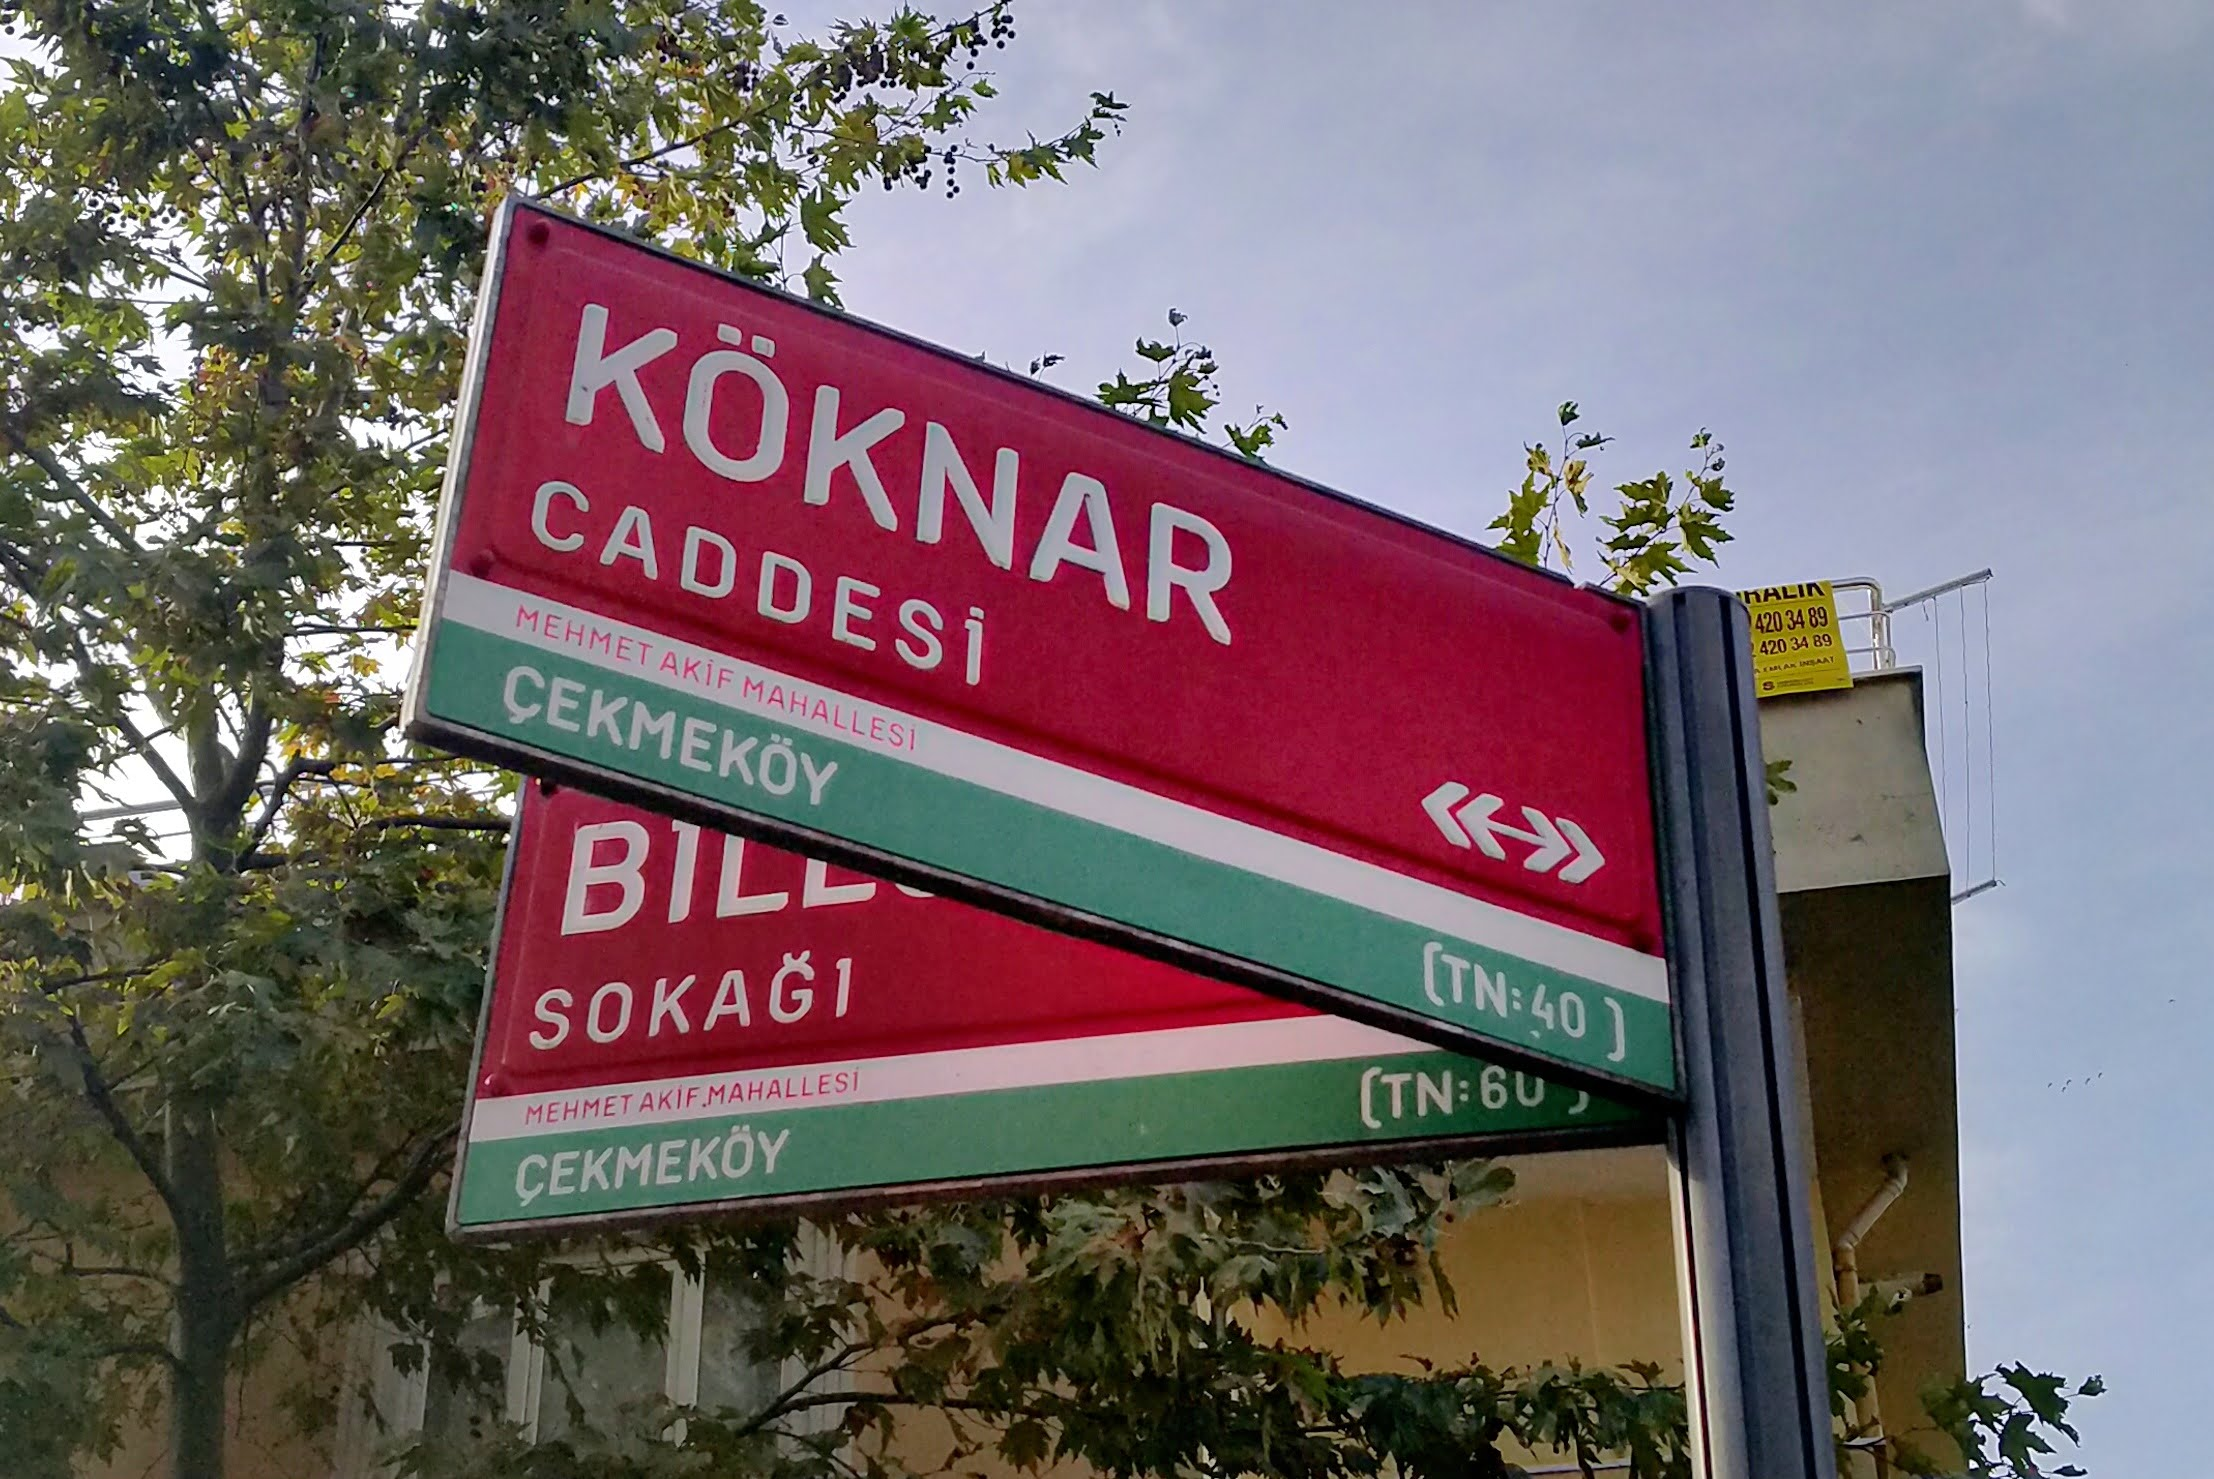 "A post with two signs on it, one partially covering the other. The signs  are colored red with a thin white strip, then a thick green strip at the  bottom. The front one says: ""KÖKNAR CADDESİ ↞↠, [on white strip] MEHMET AKİF MAHALLESİ, [on green  strip] ÇEKMEKÖY (TN:40 )"". The one behind says: ""BİL.."". SOKAĞI, [on white strip] MEHMET AKİF MAHALLESİ, [on green strip]  ÇEKMEKÖY (TN:60 )"""